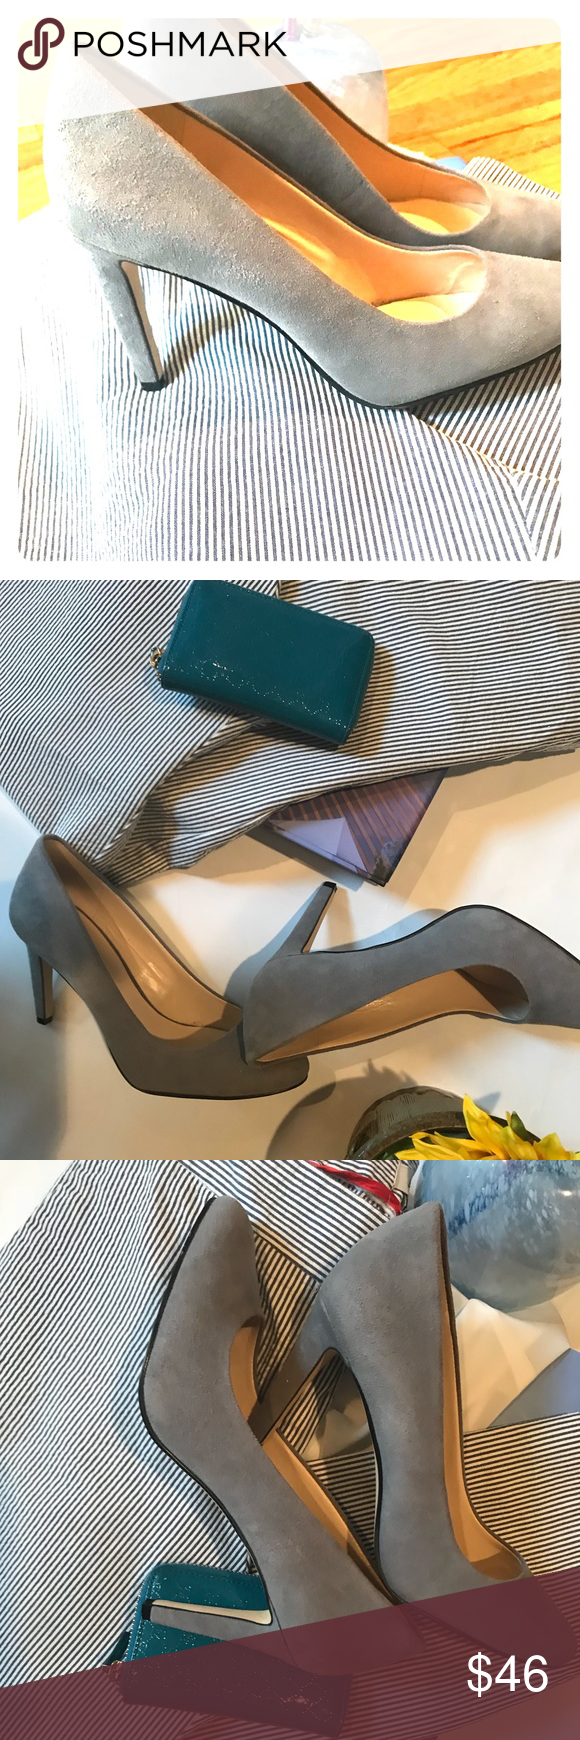 0610962fca8 Nine West Gray Suede Round Toe Pumps Worn Once! Nine West Gray Suede Round  Toe Pumps Nine West Shoes Heels